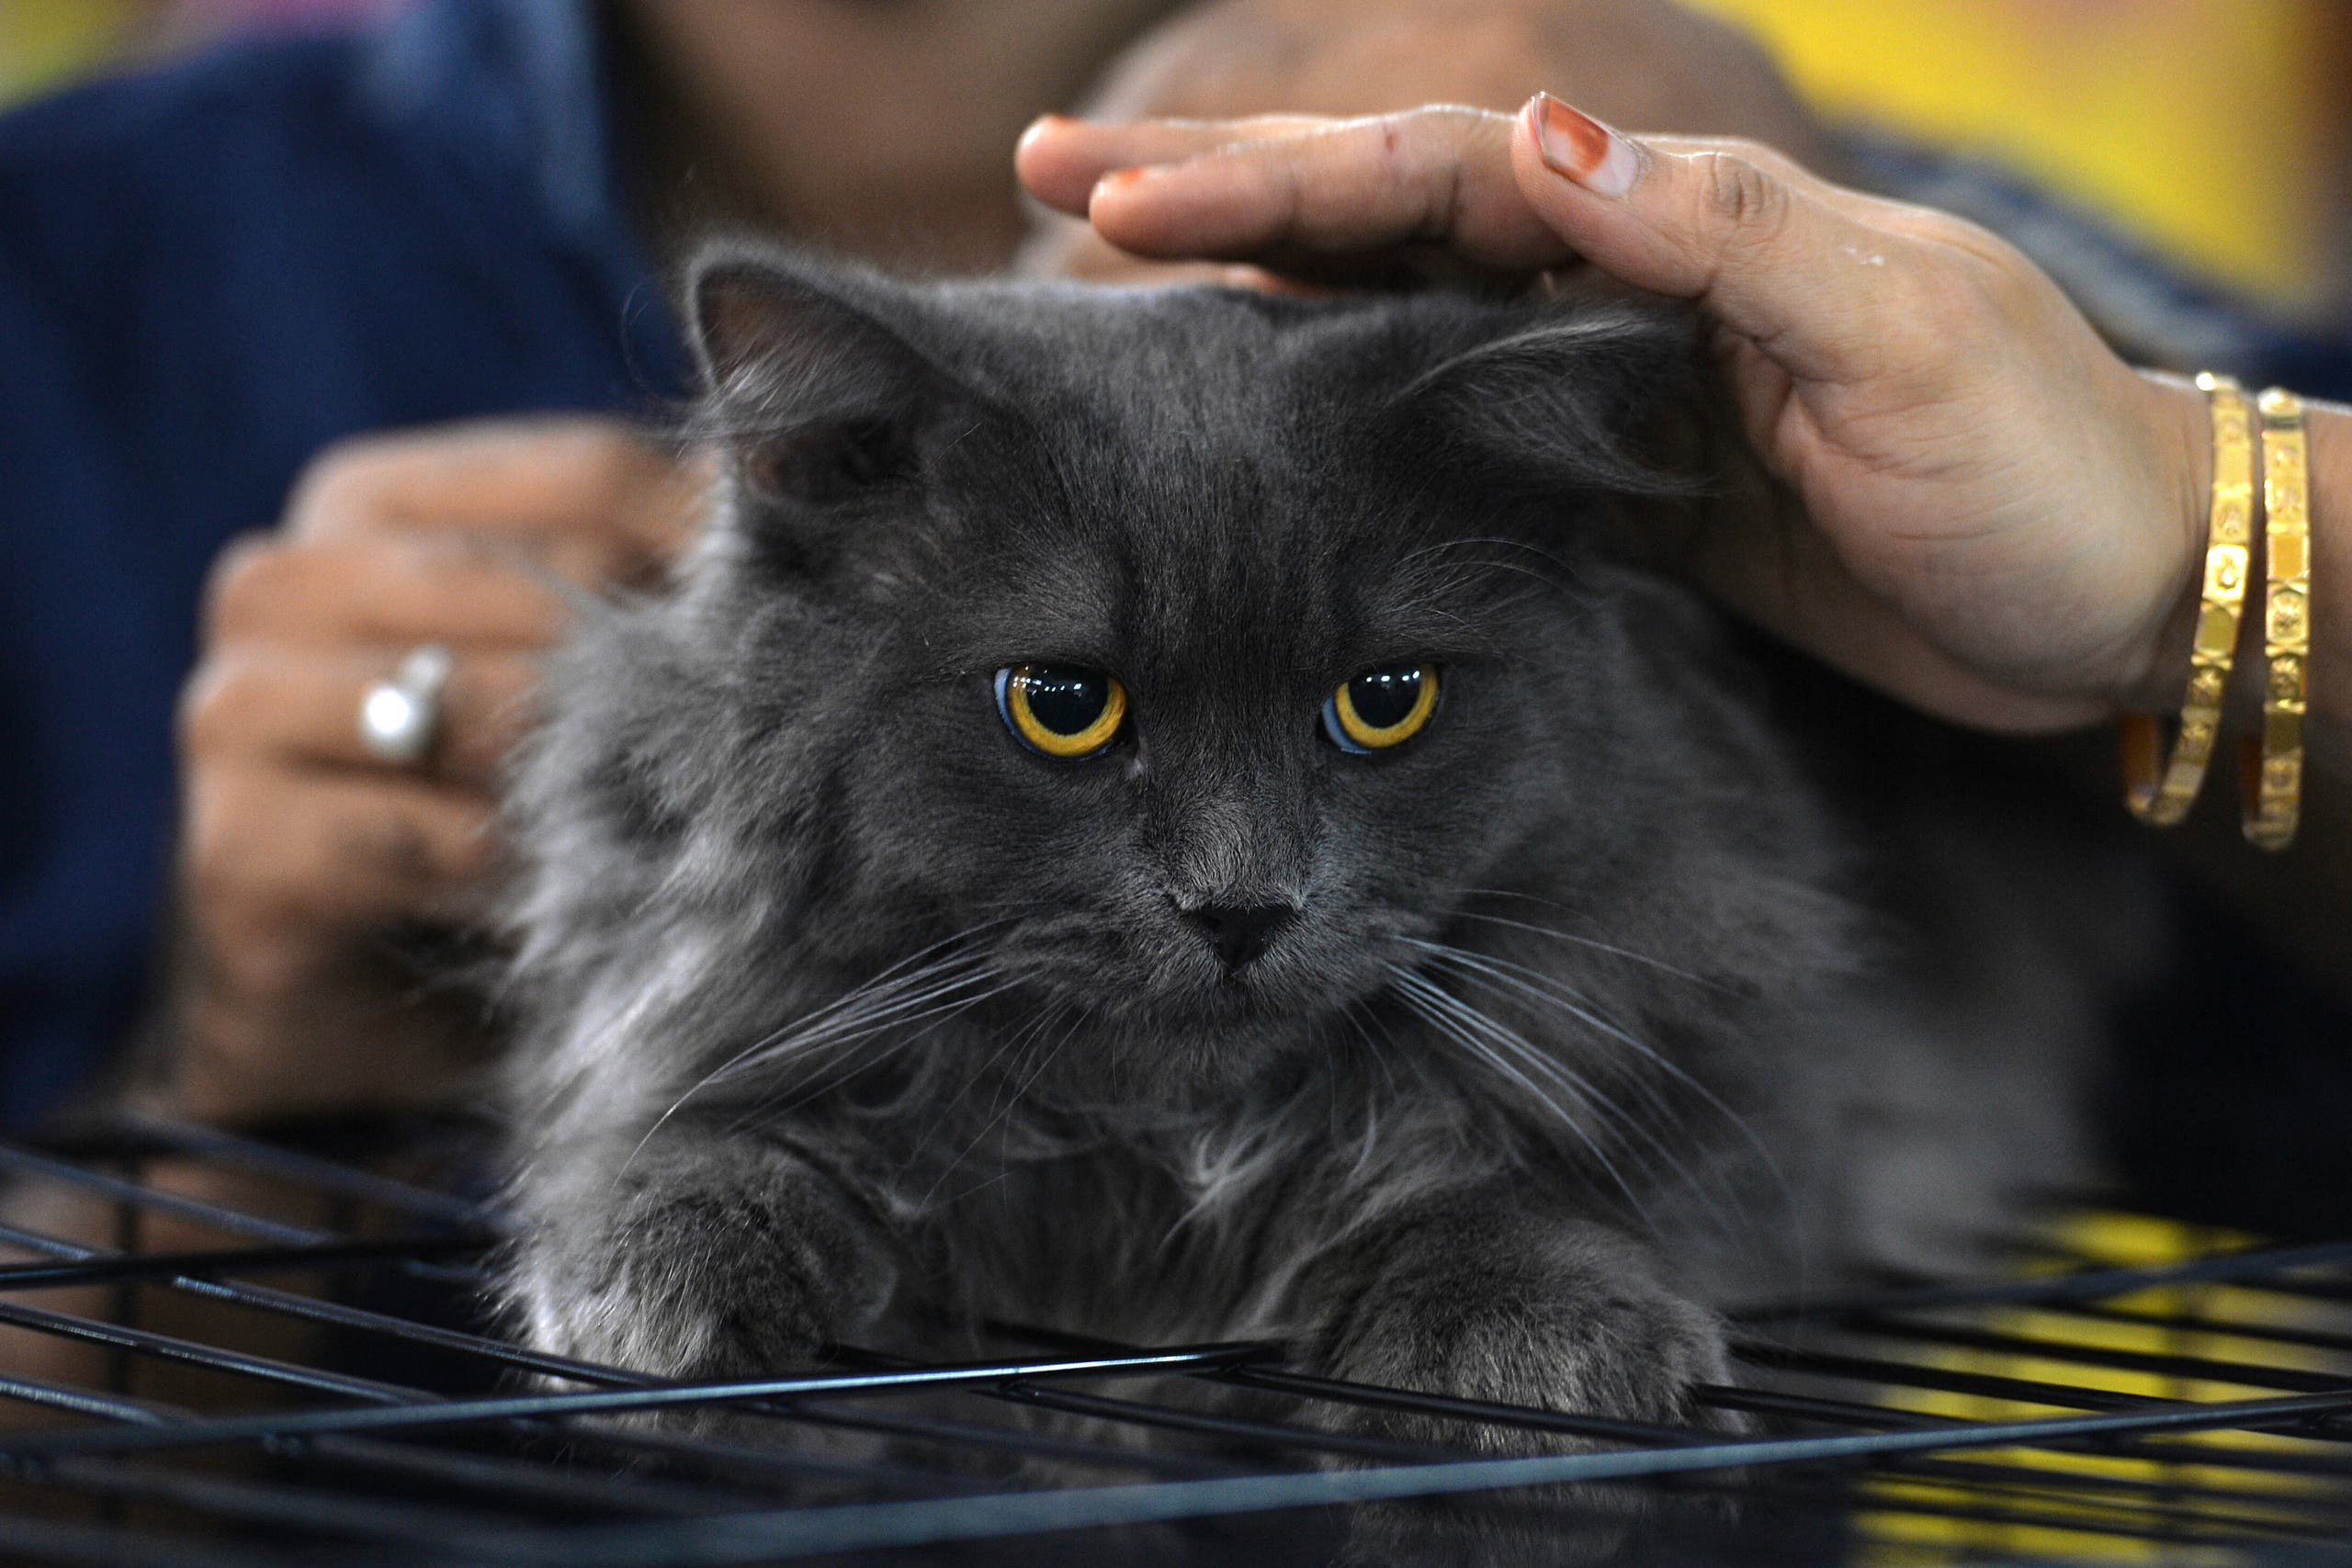 Visitors pat Sheru, a Siberian cat, during the 8th International Cat Show organised by the World Cat Federation in Bangalore on July 30, 2017. (AFP)